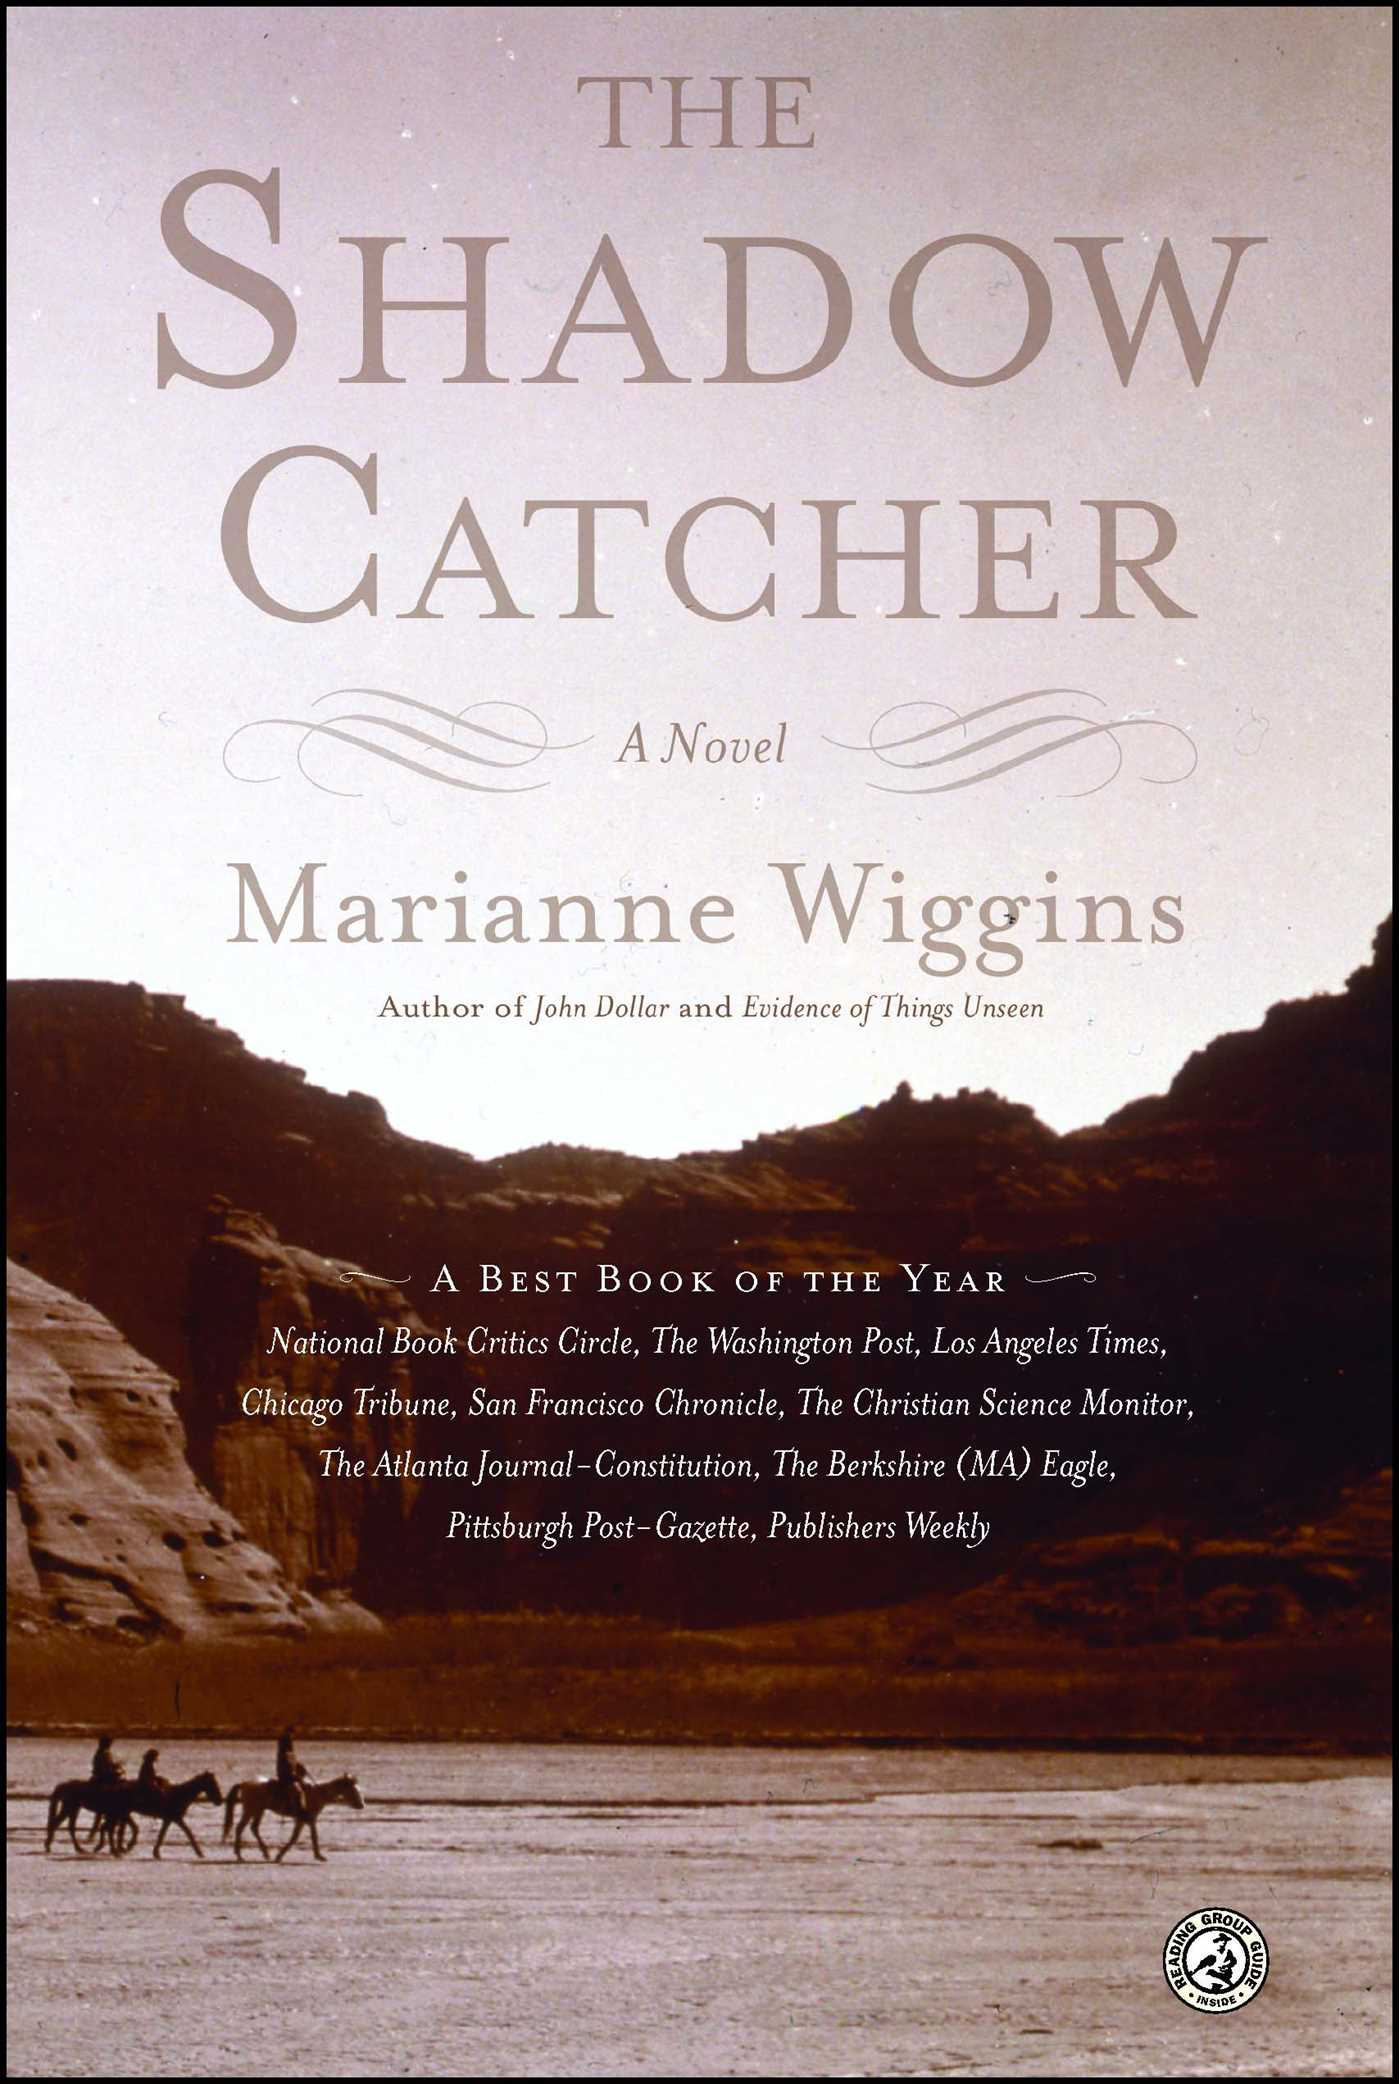 The shadow catcher 9780743265218 hr